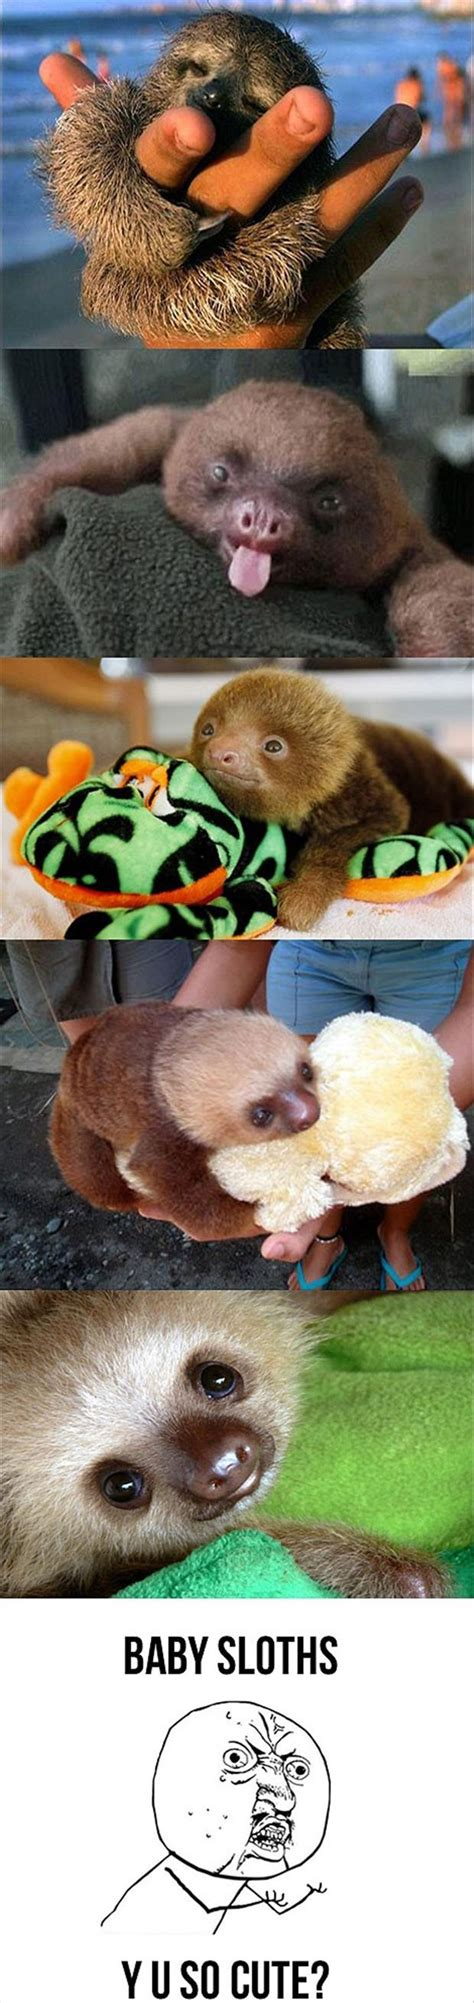 Baby Sloth Meme - funny baby sloth bing images